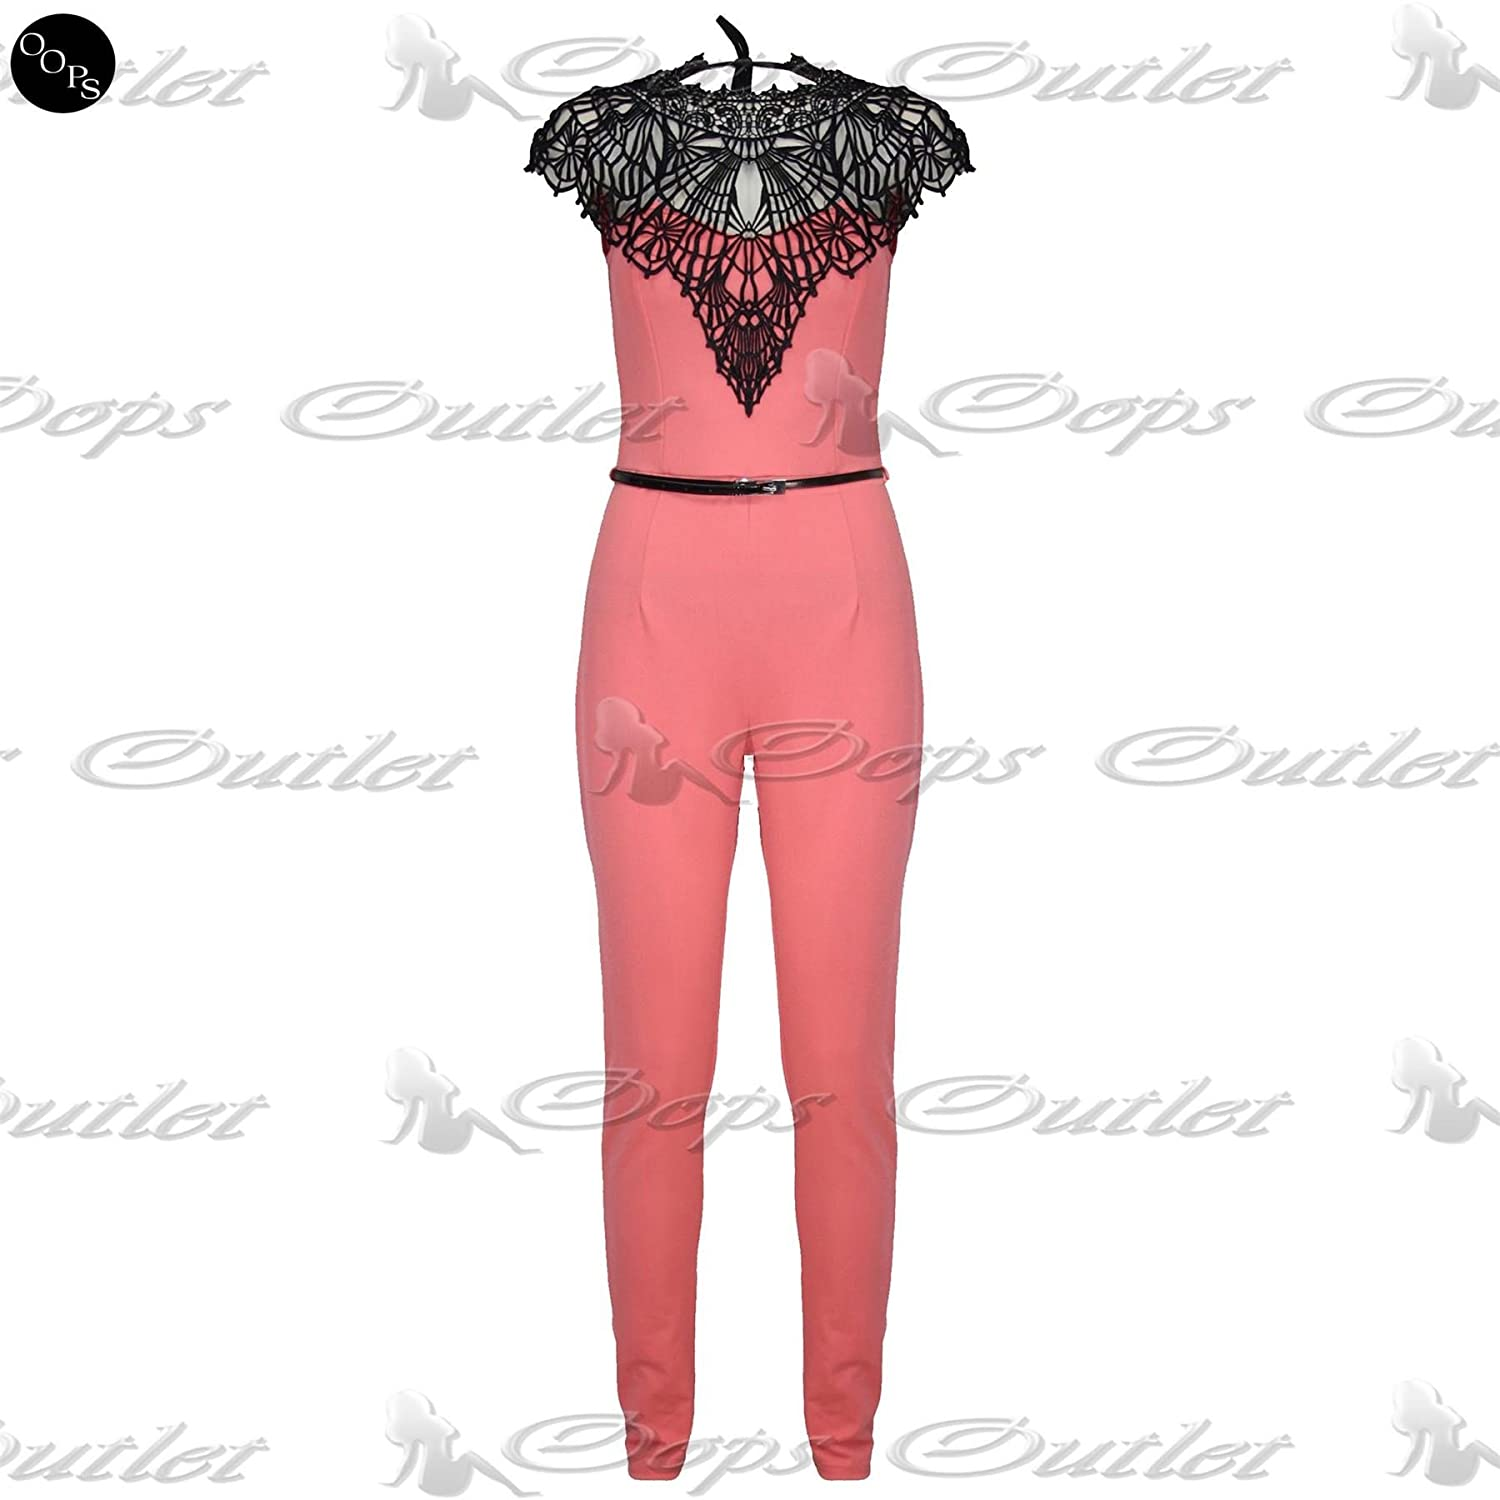 Pure Fashion Damen Jumpsuit Ärmellos Mehrfarbig